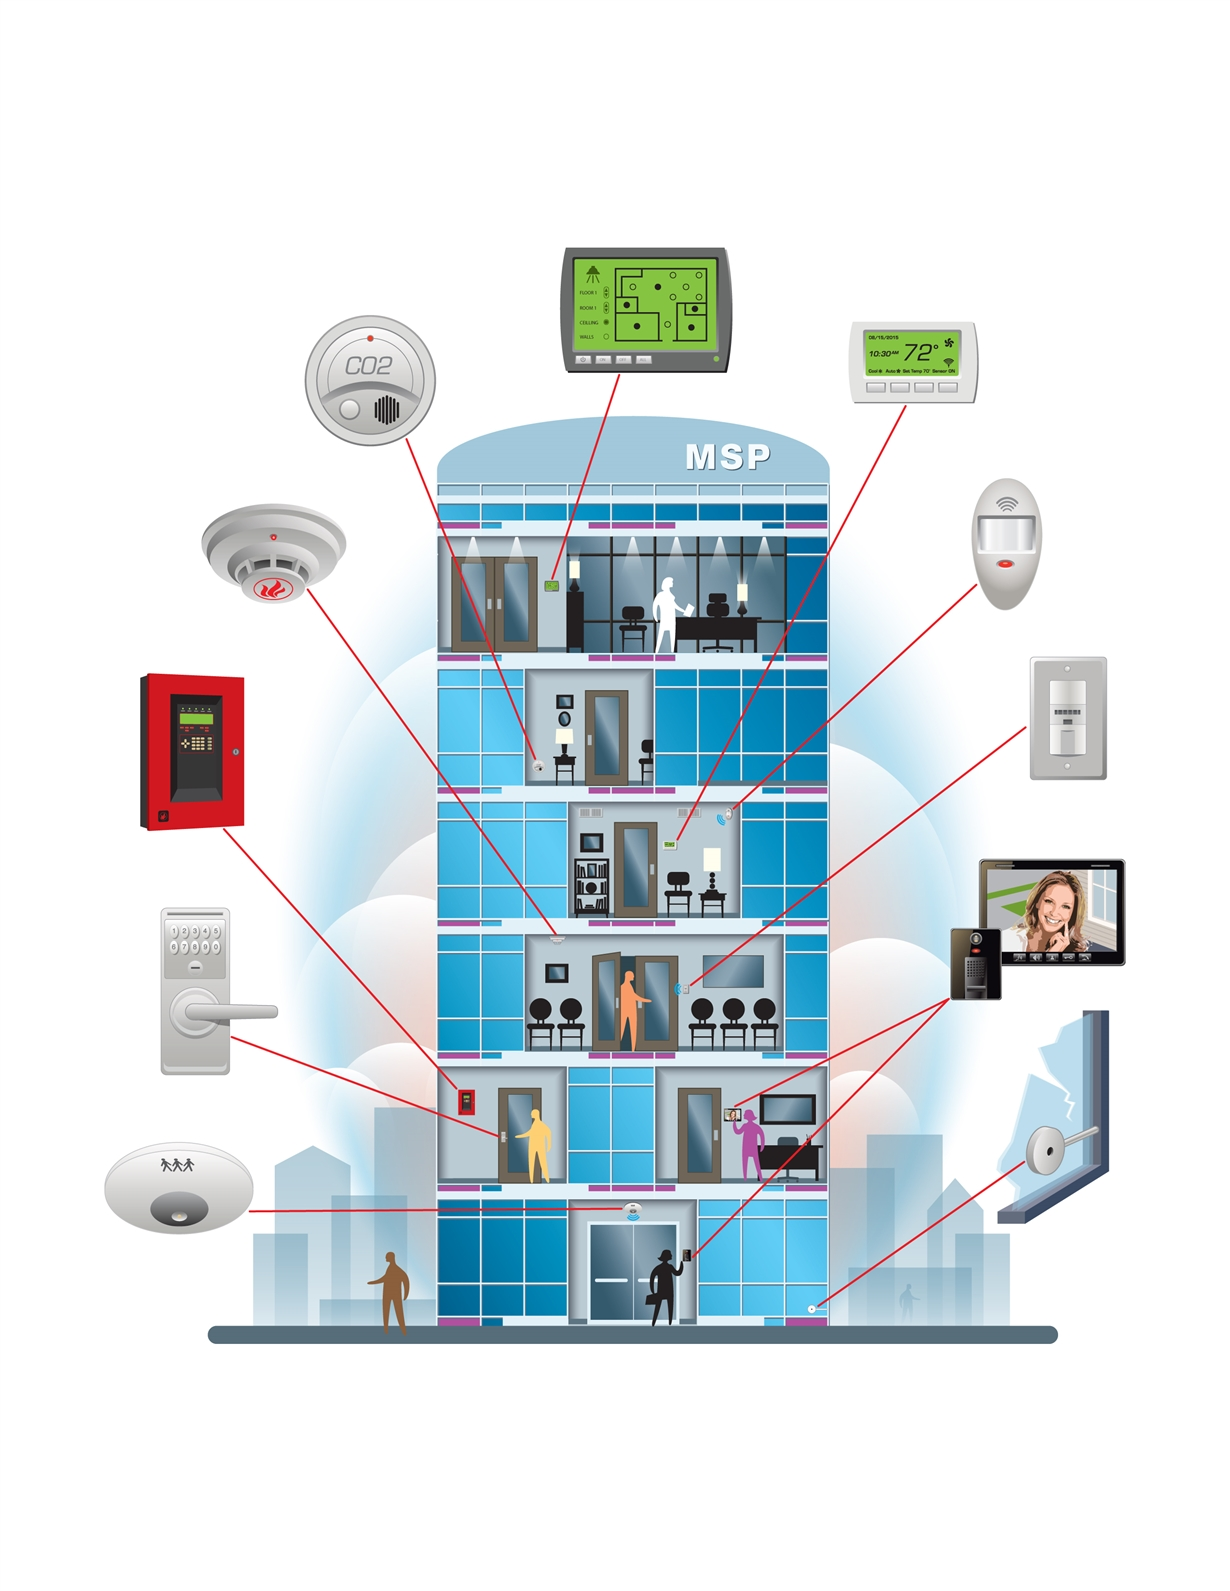 Design A Battery Powered Building Automation System To